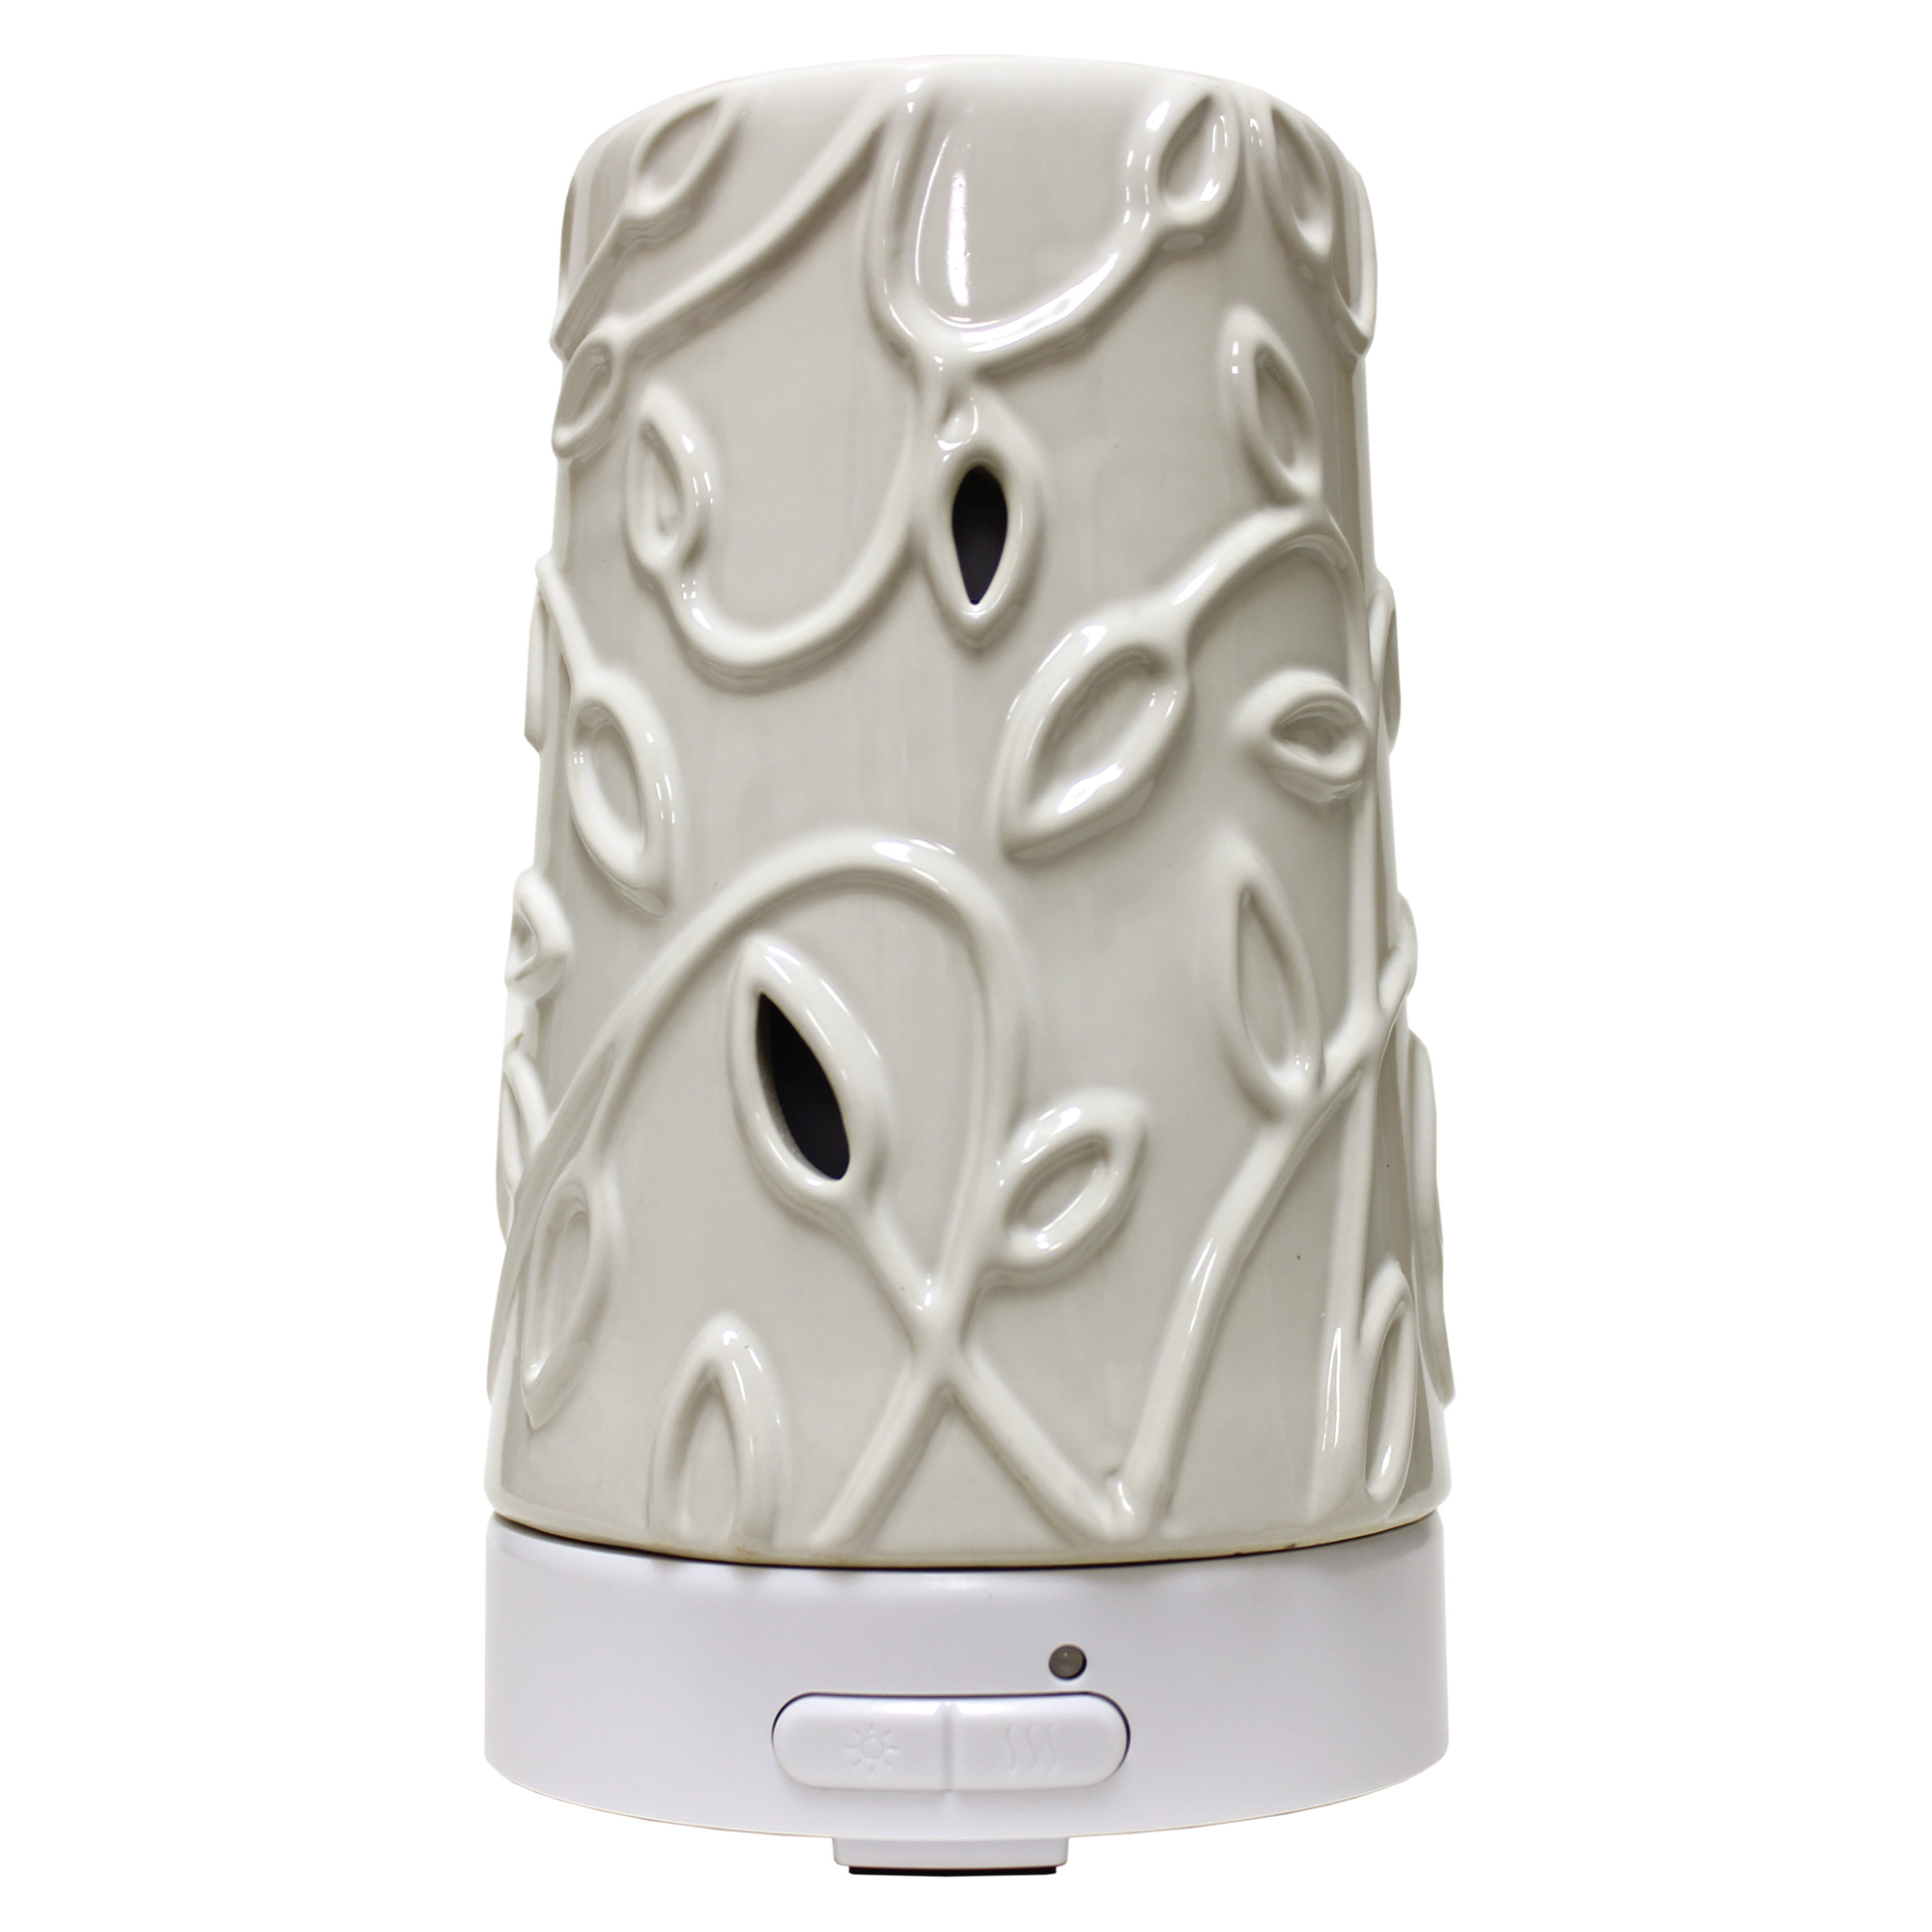 VINE ULTRASONIC OIL DIFFUSERUPC# 674623018034